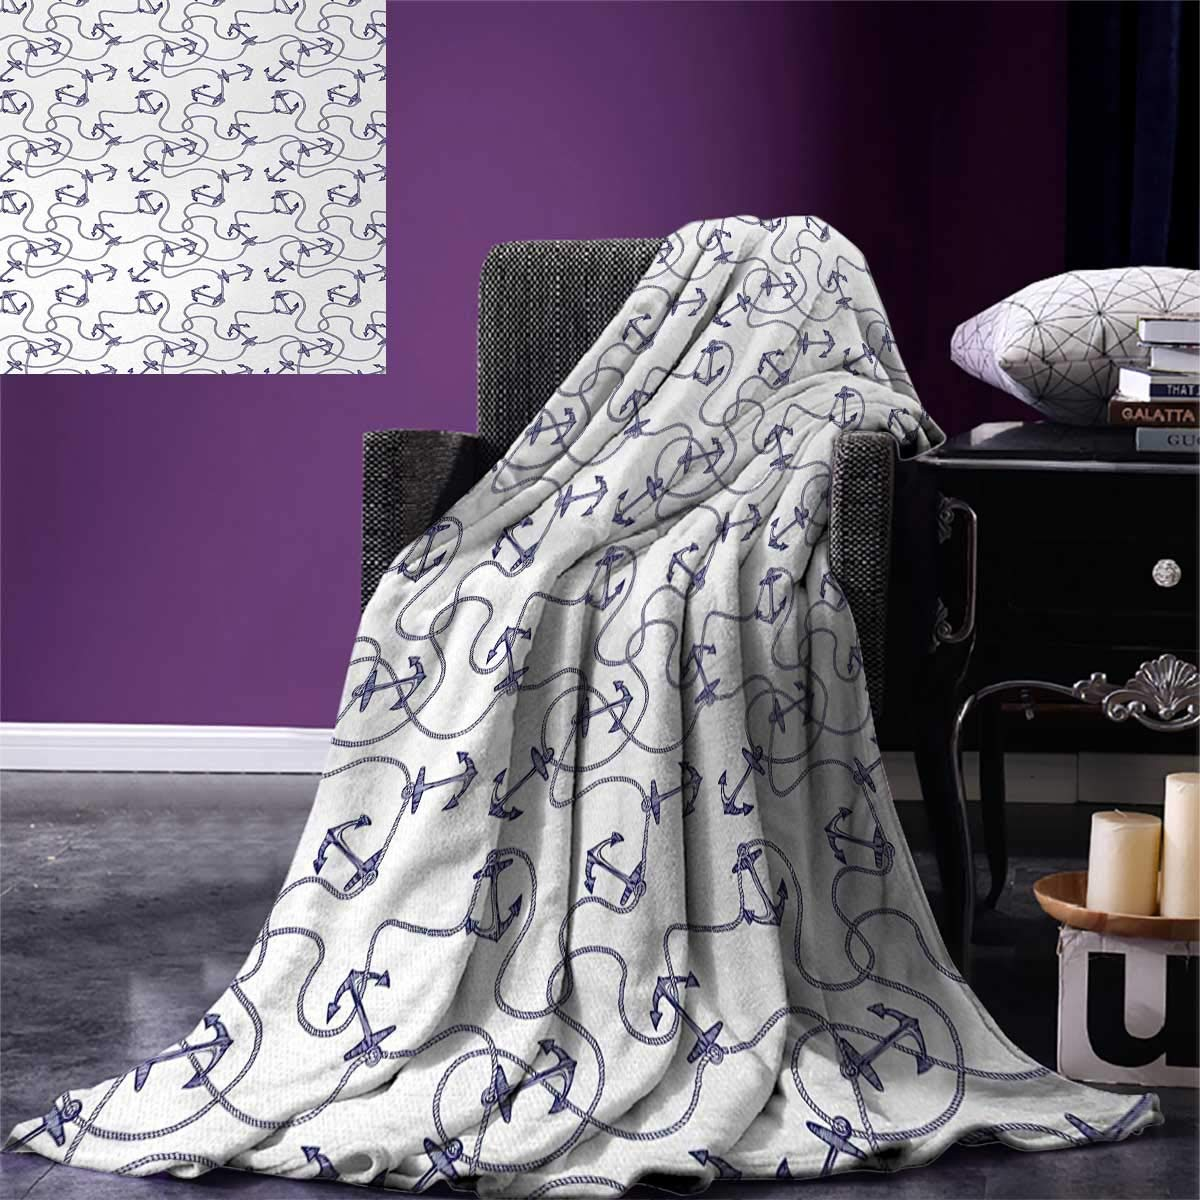 Anchor Digital Printing Blanket Hand Drawn Anchors and Entangled Ropes Nautical Equipment Artwork Monochrome Summer Quilt Comforter 80''x60'' Navy Blue White